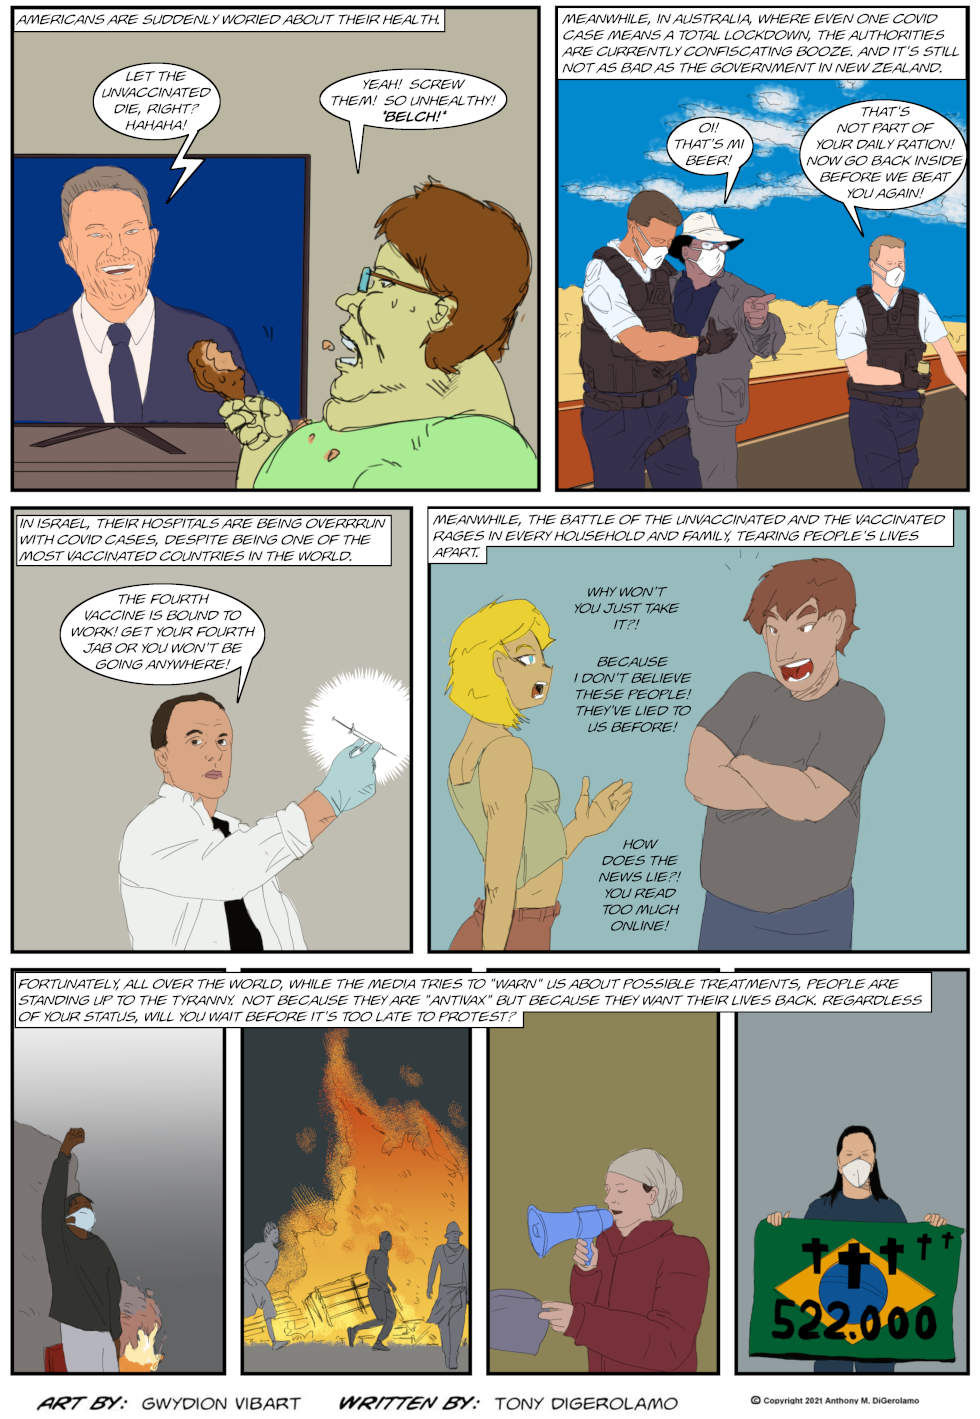 The Antiwar Comic: The War Against Protest